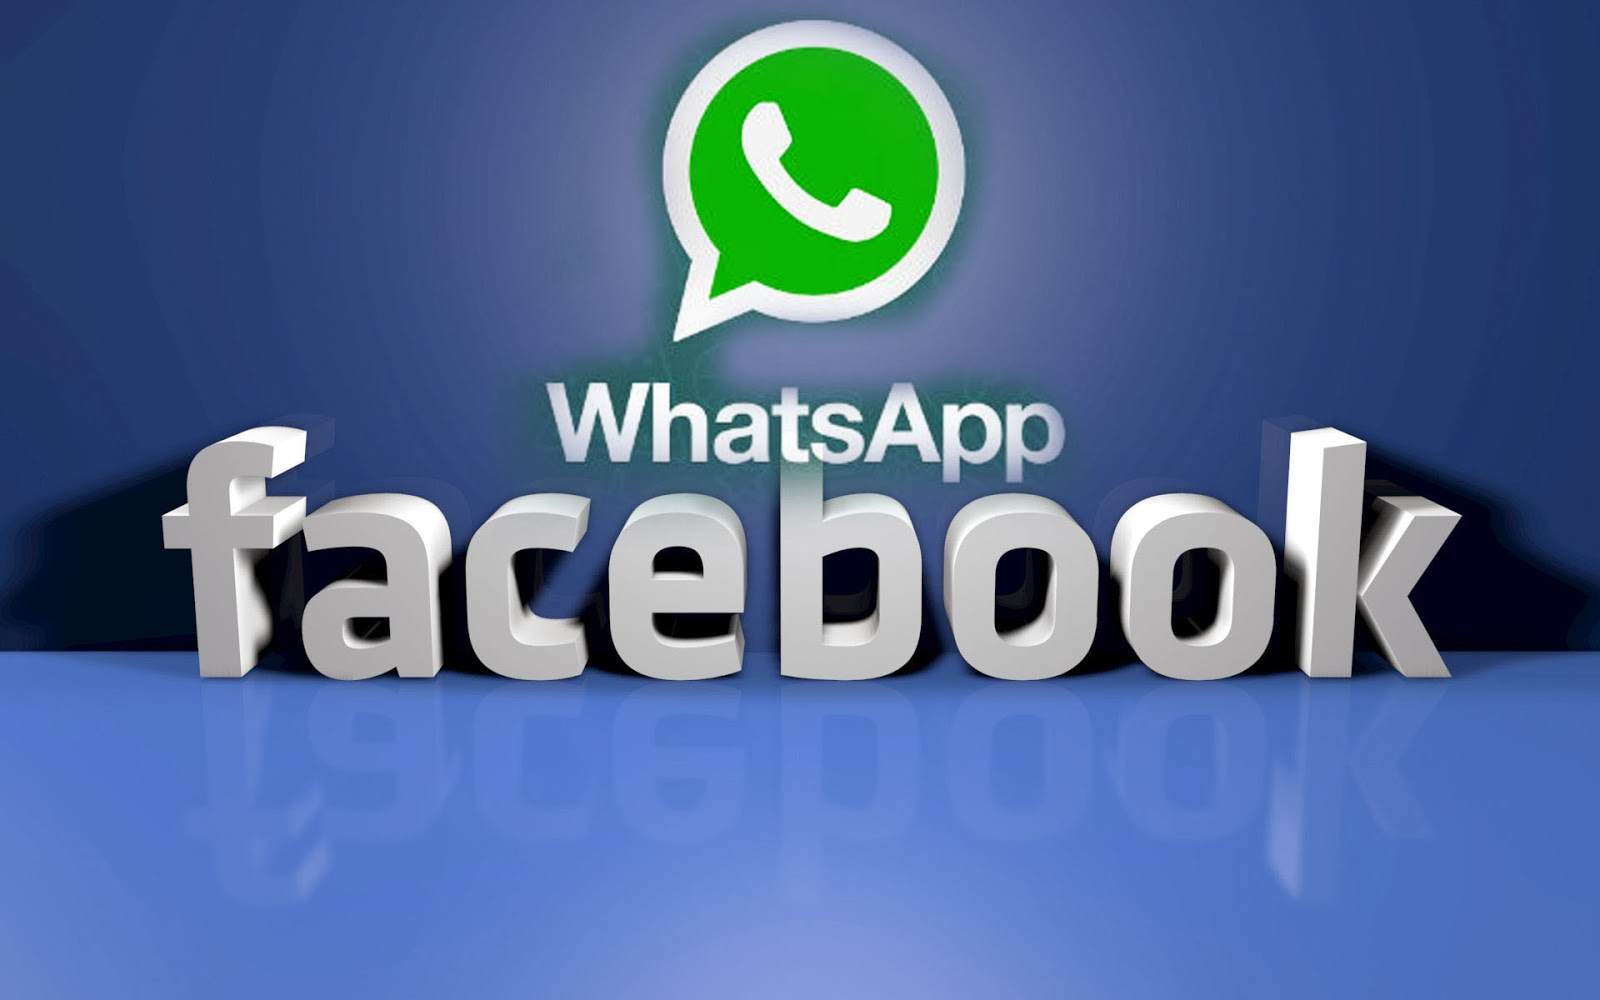 Popular im service whatsapp has reached the 500 million users